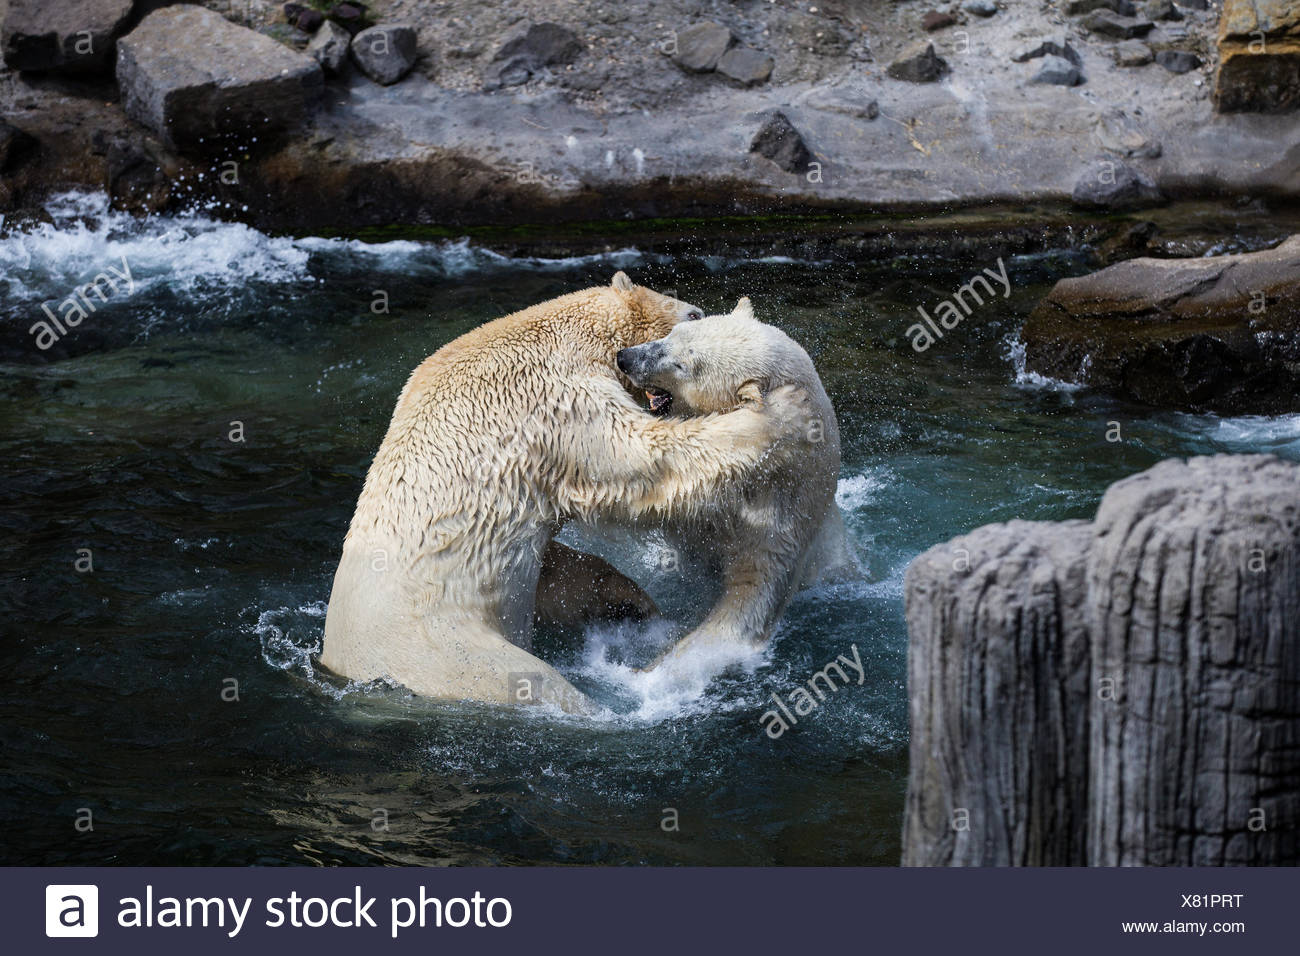 two juvenile respectively 500kg heavy polar bears at play fighting in hannover adventure zoo - Stock Image